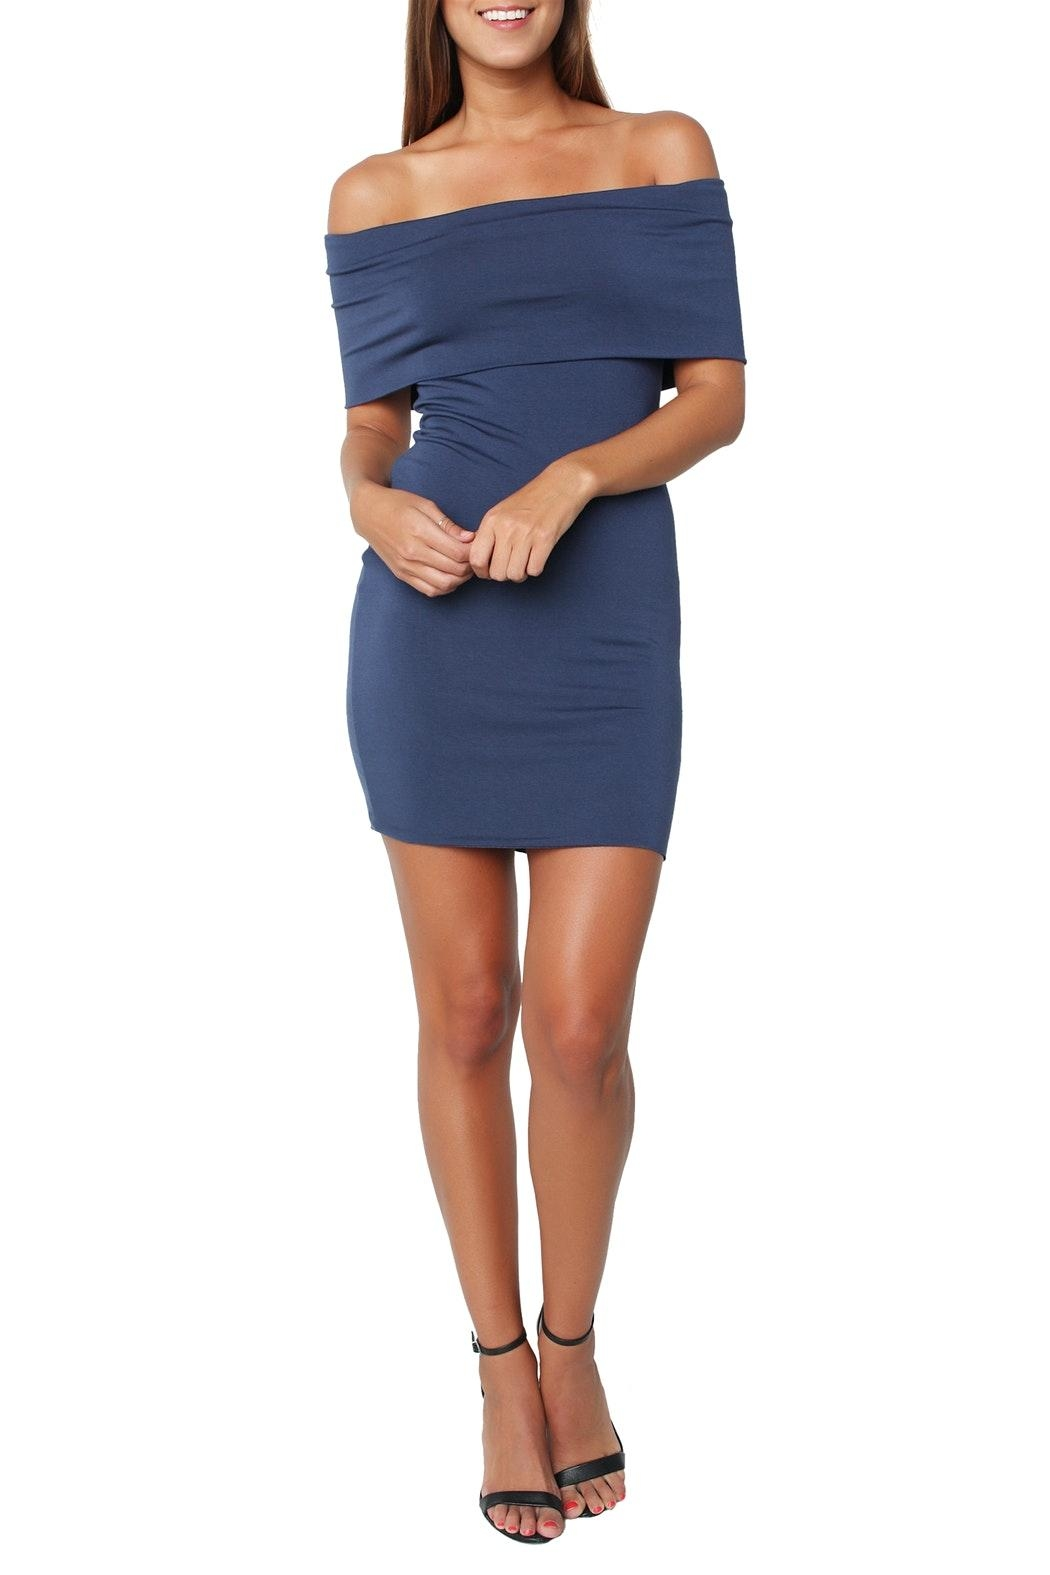 Bailey 44 Hot-Diggin Blue Dress - Front Full Image